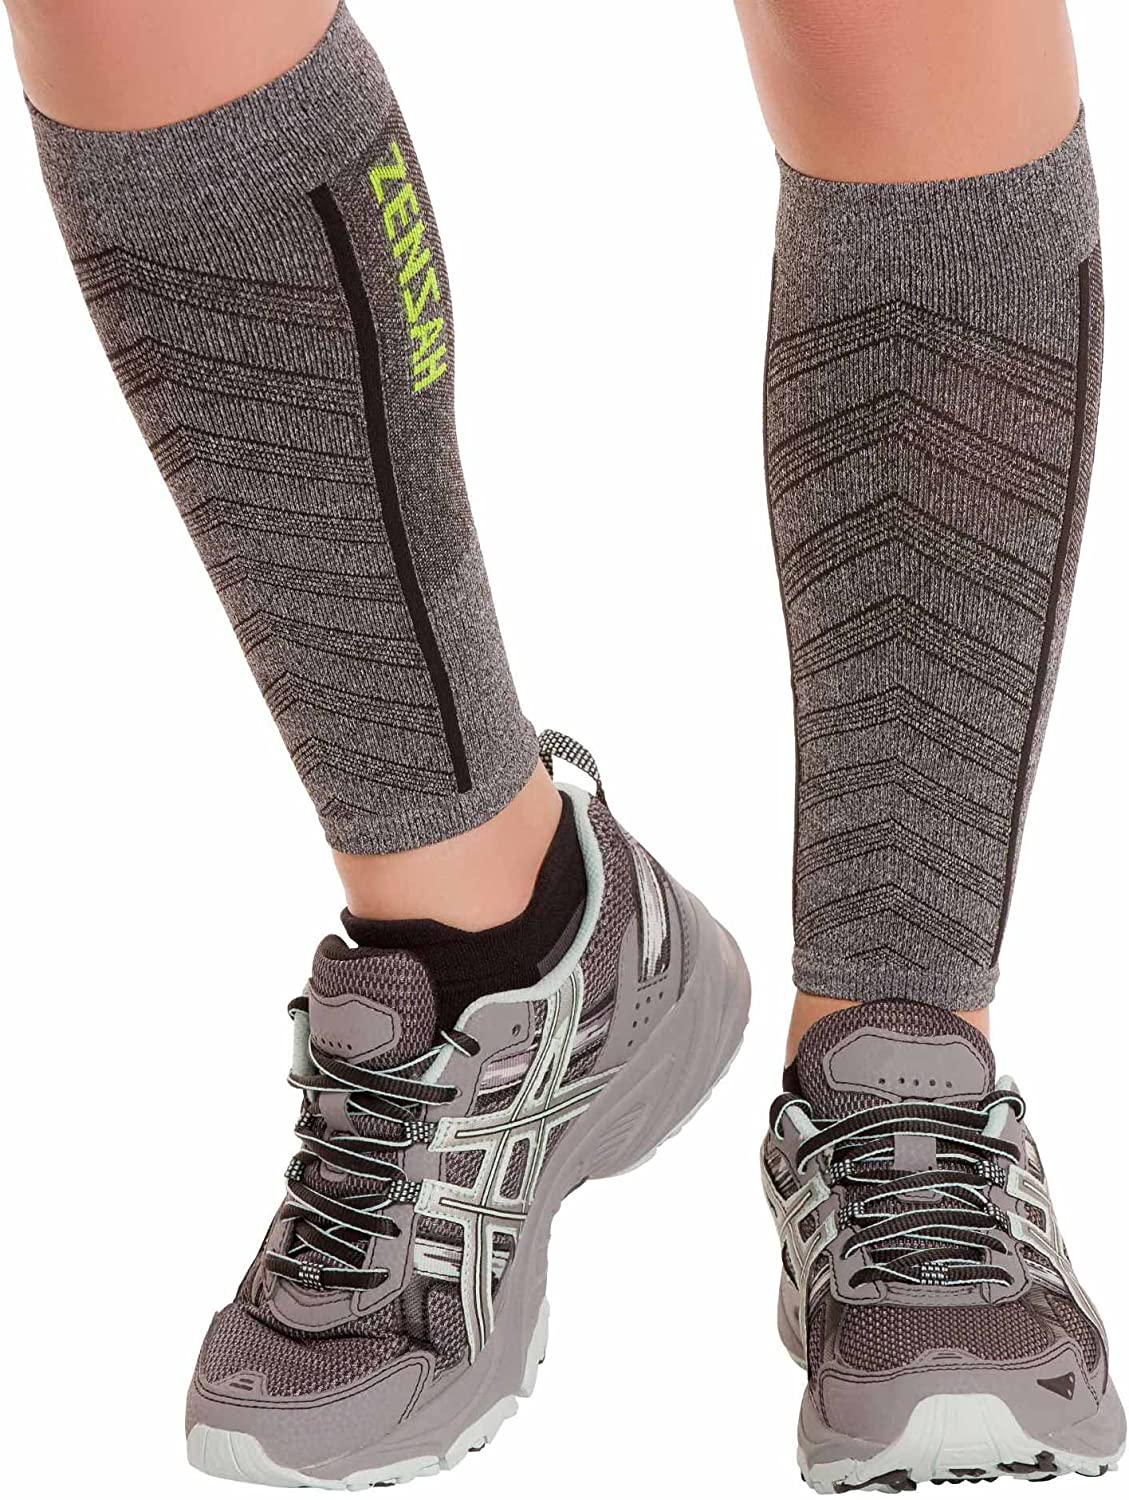 Featherweight Compression Leg Sleeves - Splints Ca Shin New arrival Ranking TOP8 Relieve